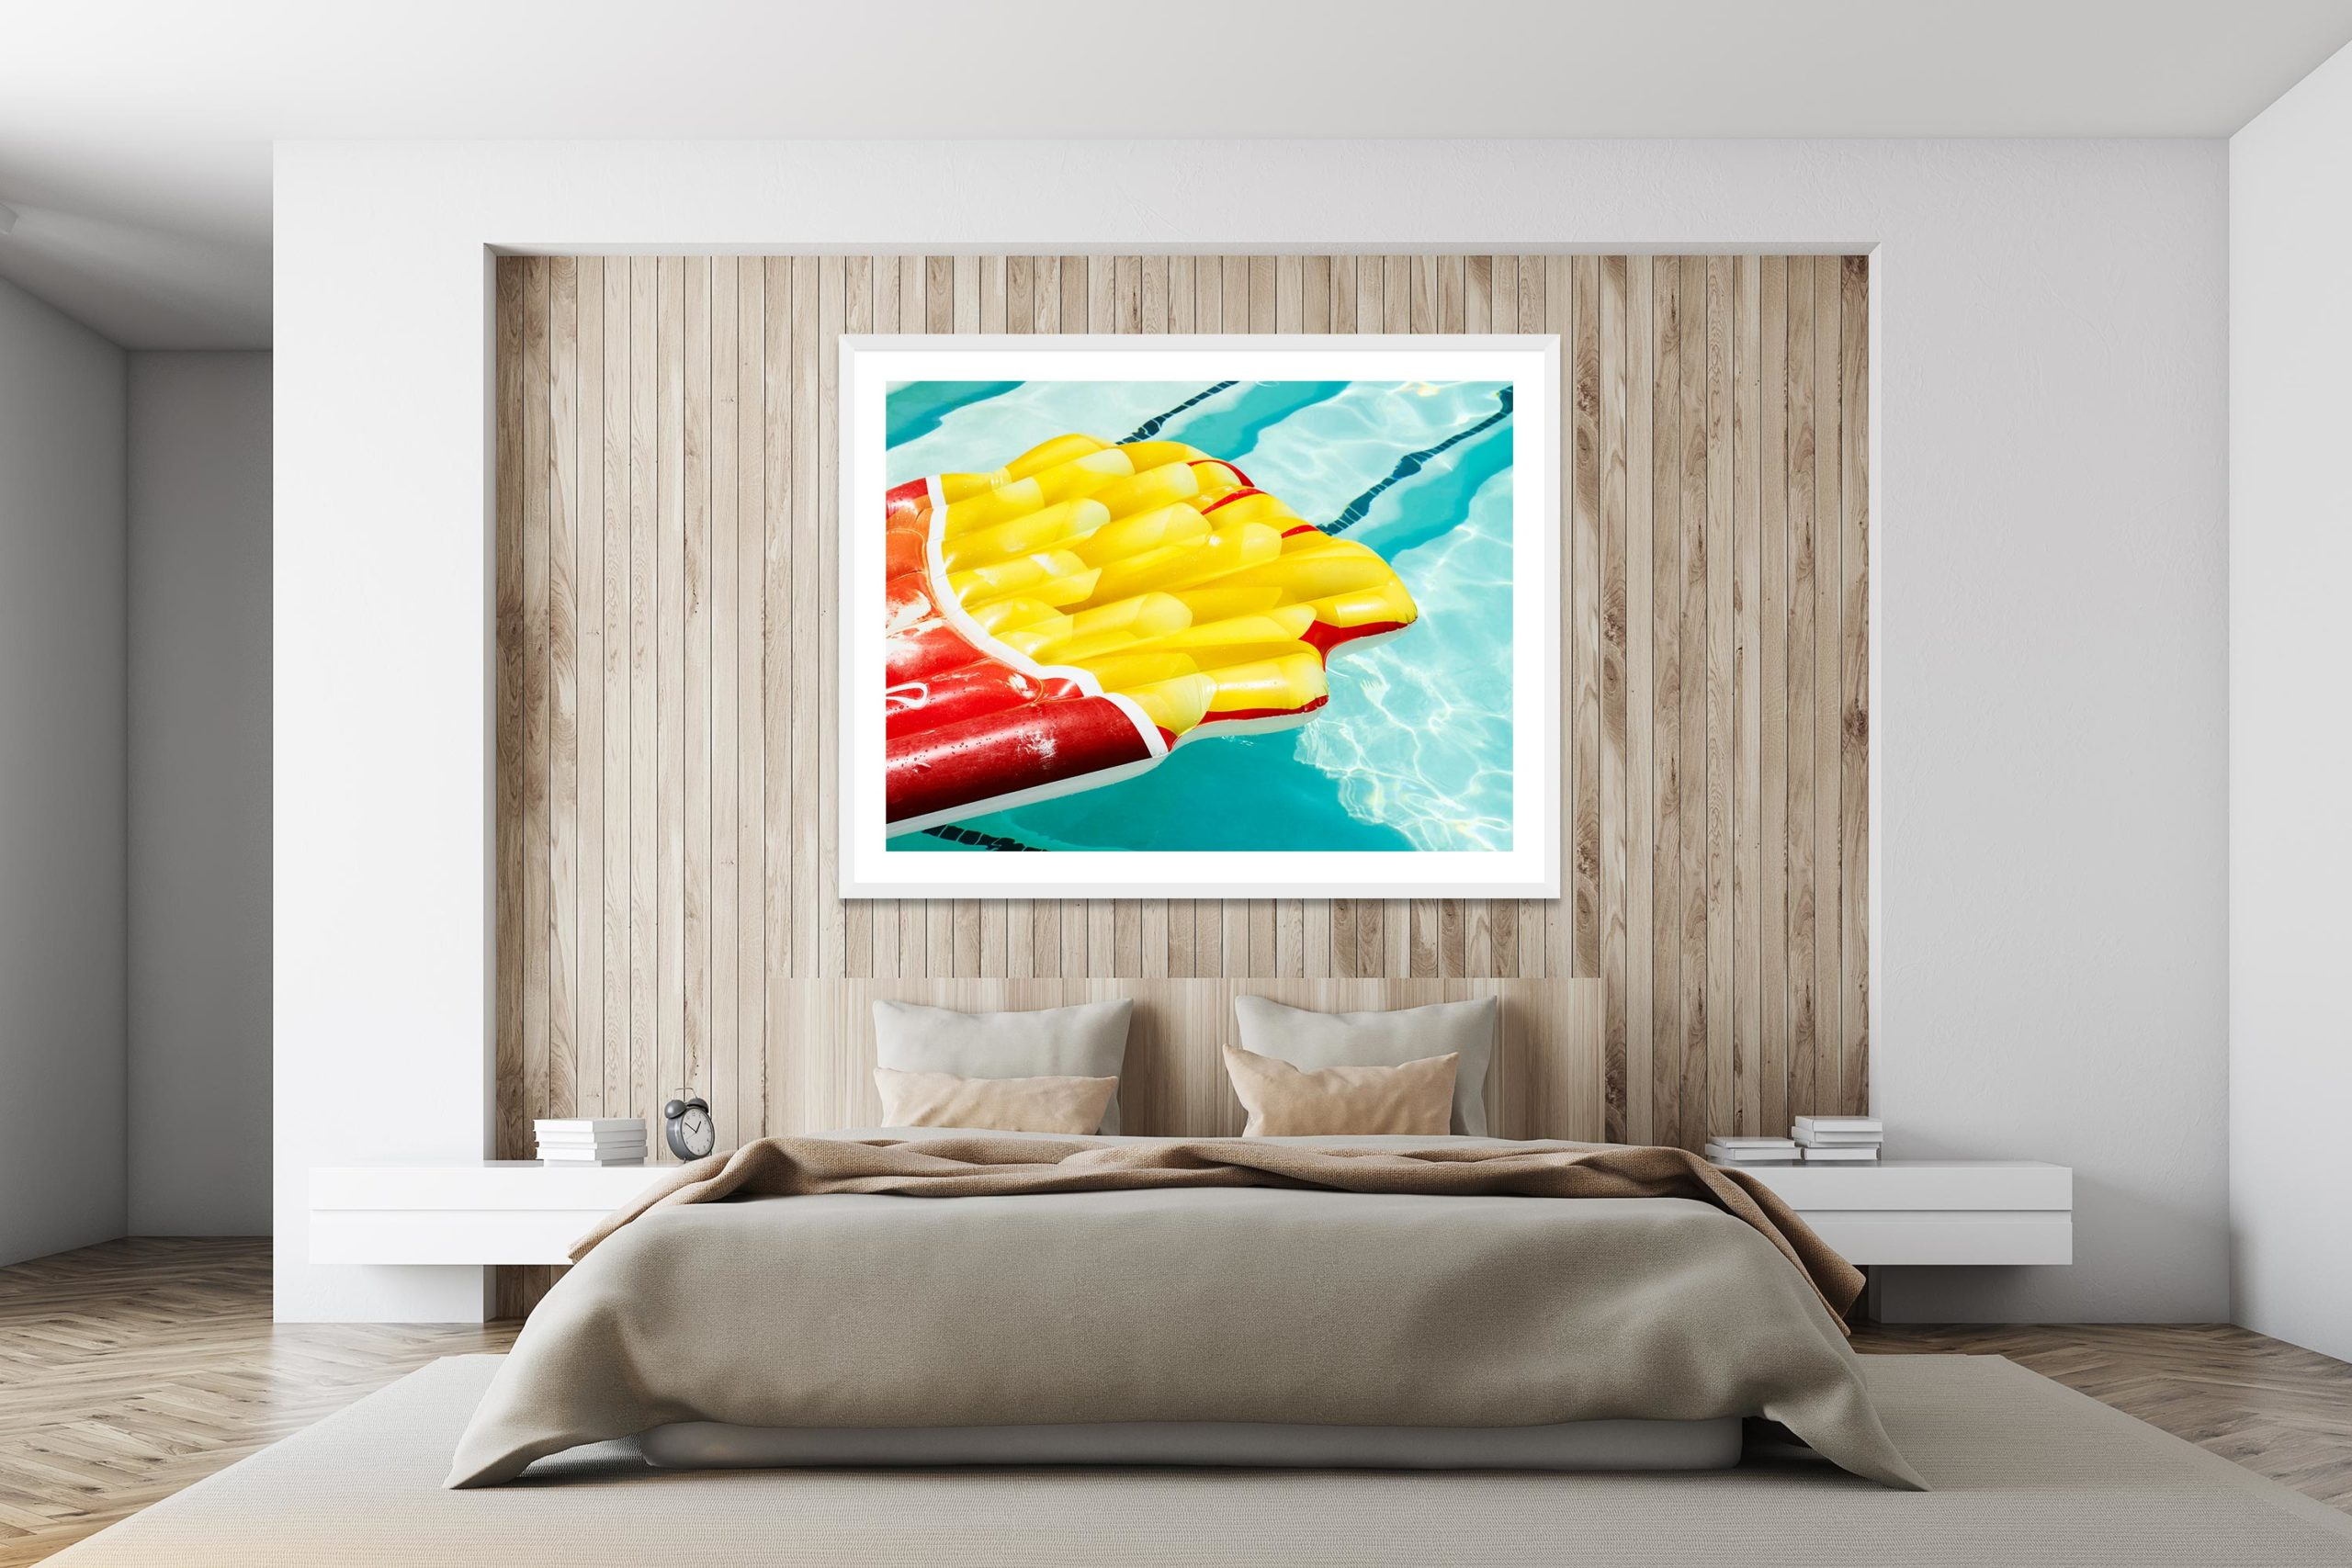 Fries - White Frame - I Heart Palm Springs Collection - Fine Art Photography by Toby Dixon